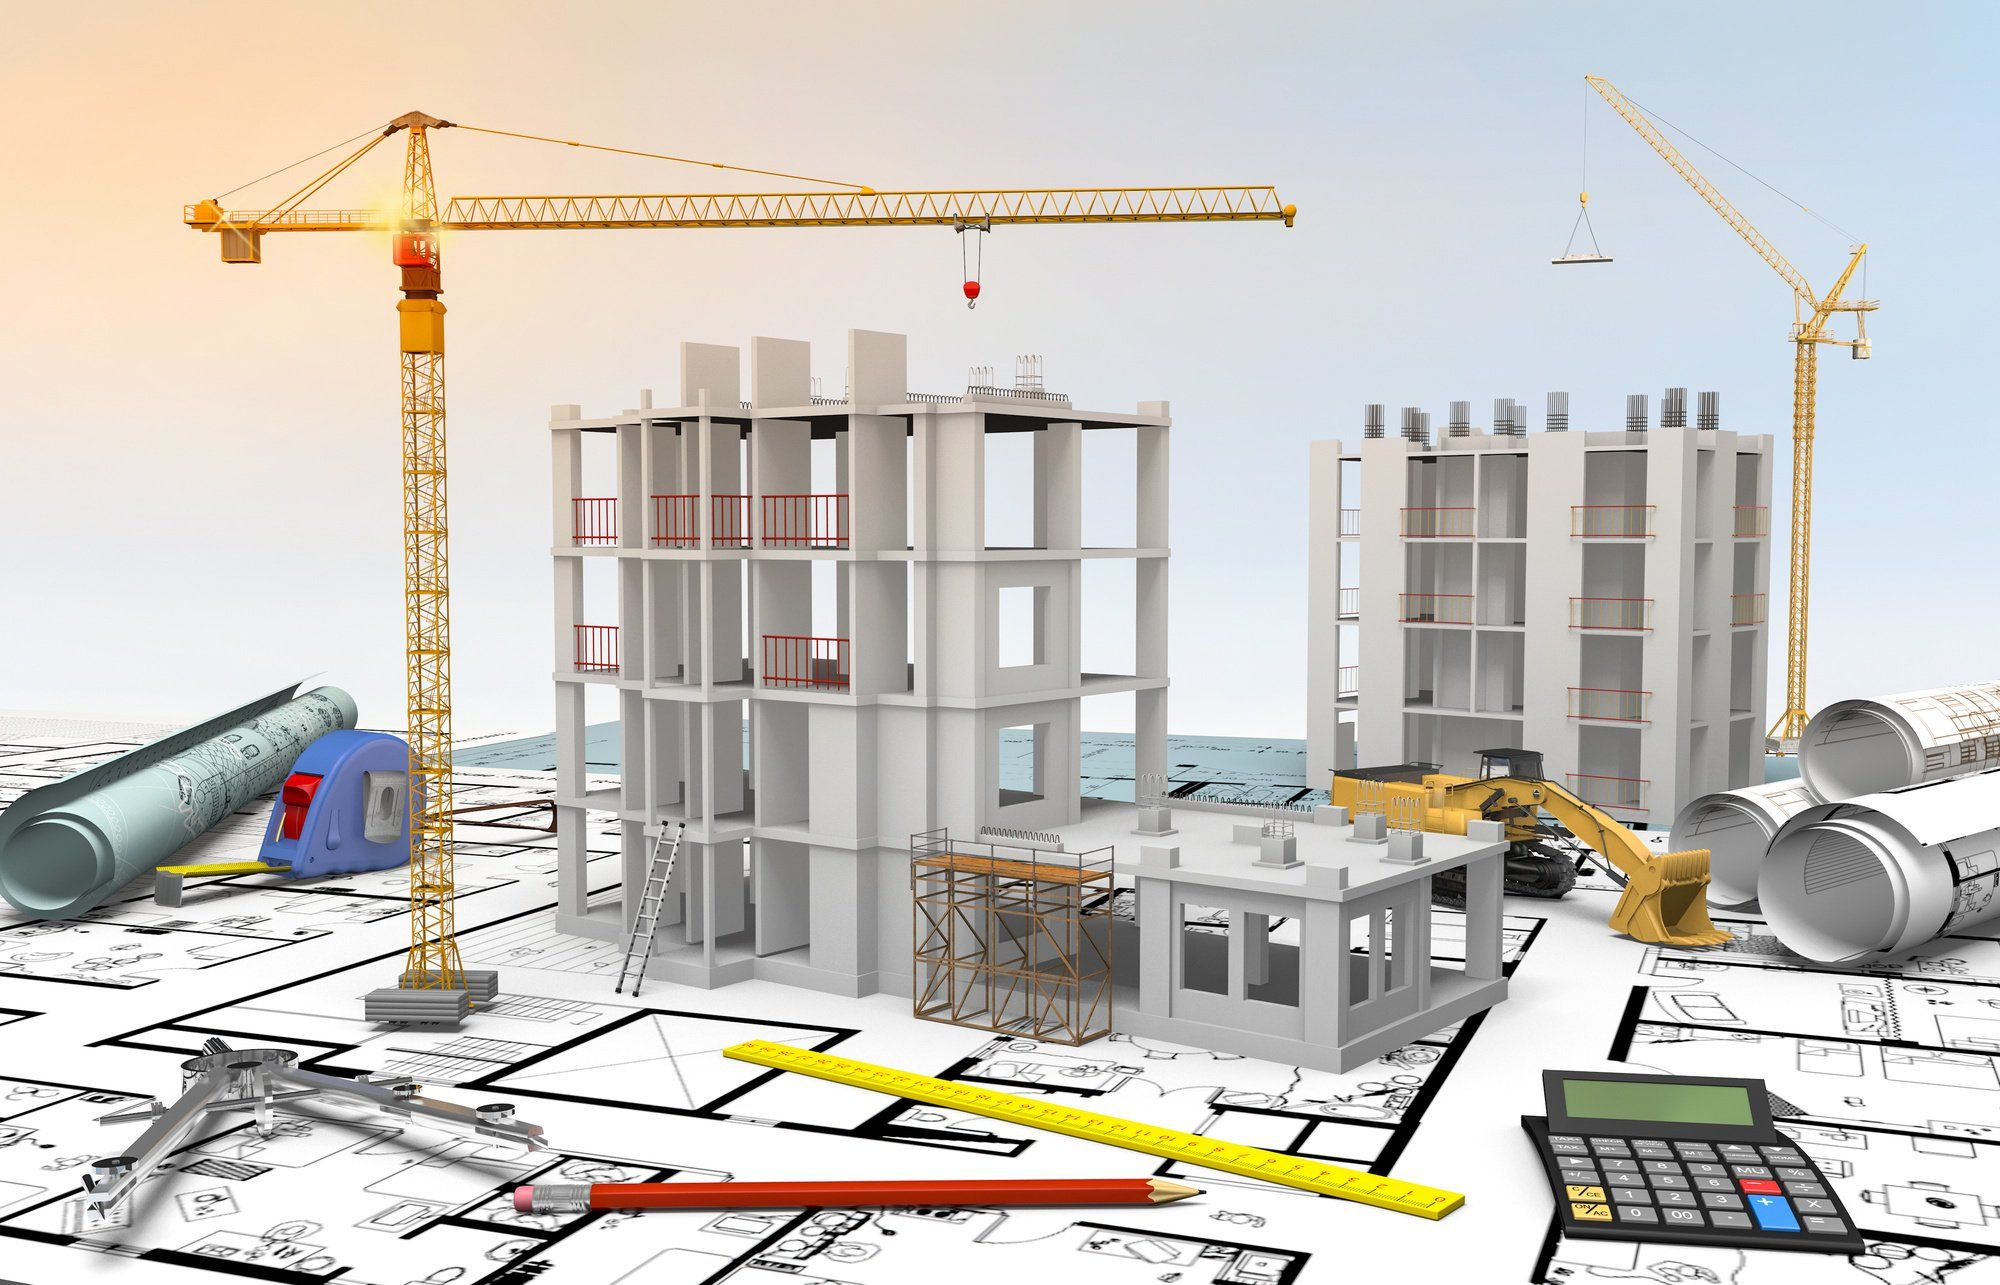 3d Building Models For Engineers And Architects 3d Building Models Civil Engineering Design 3d Building